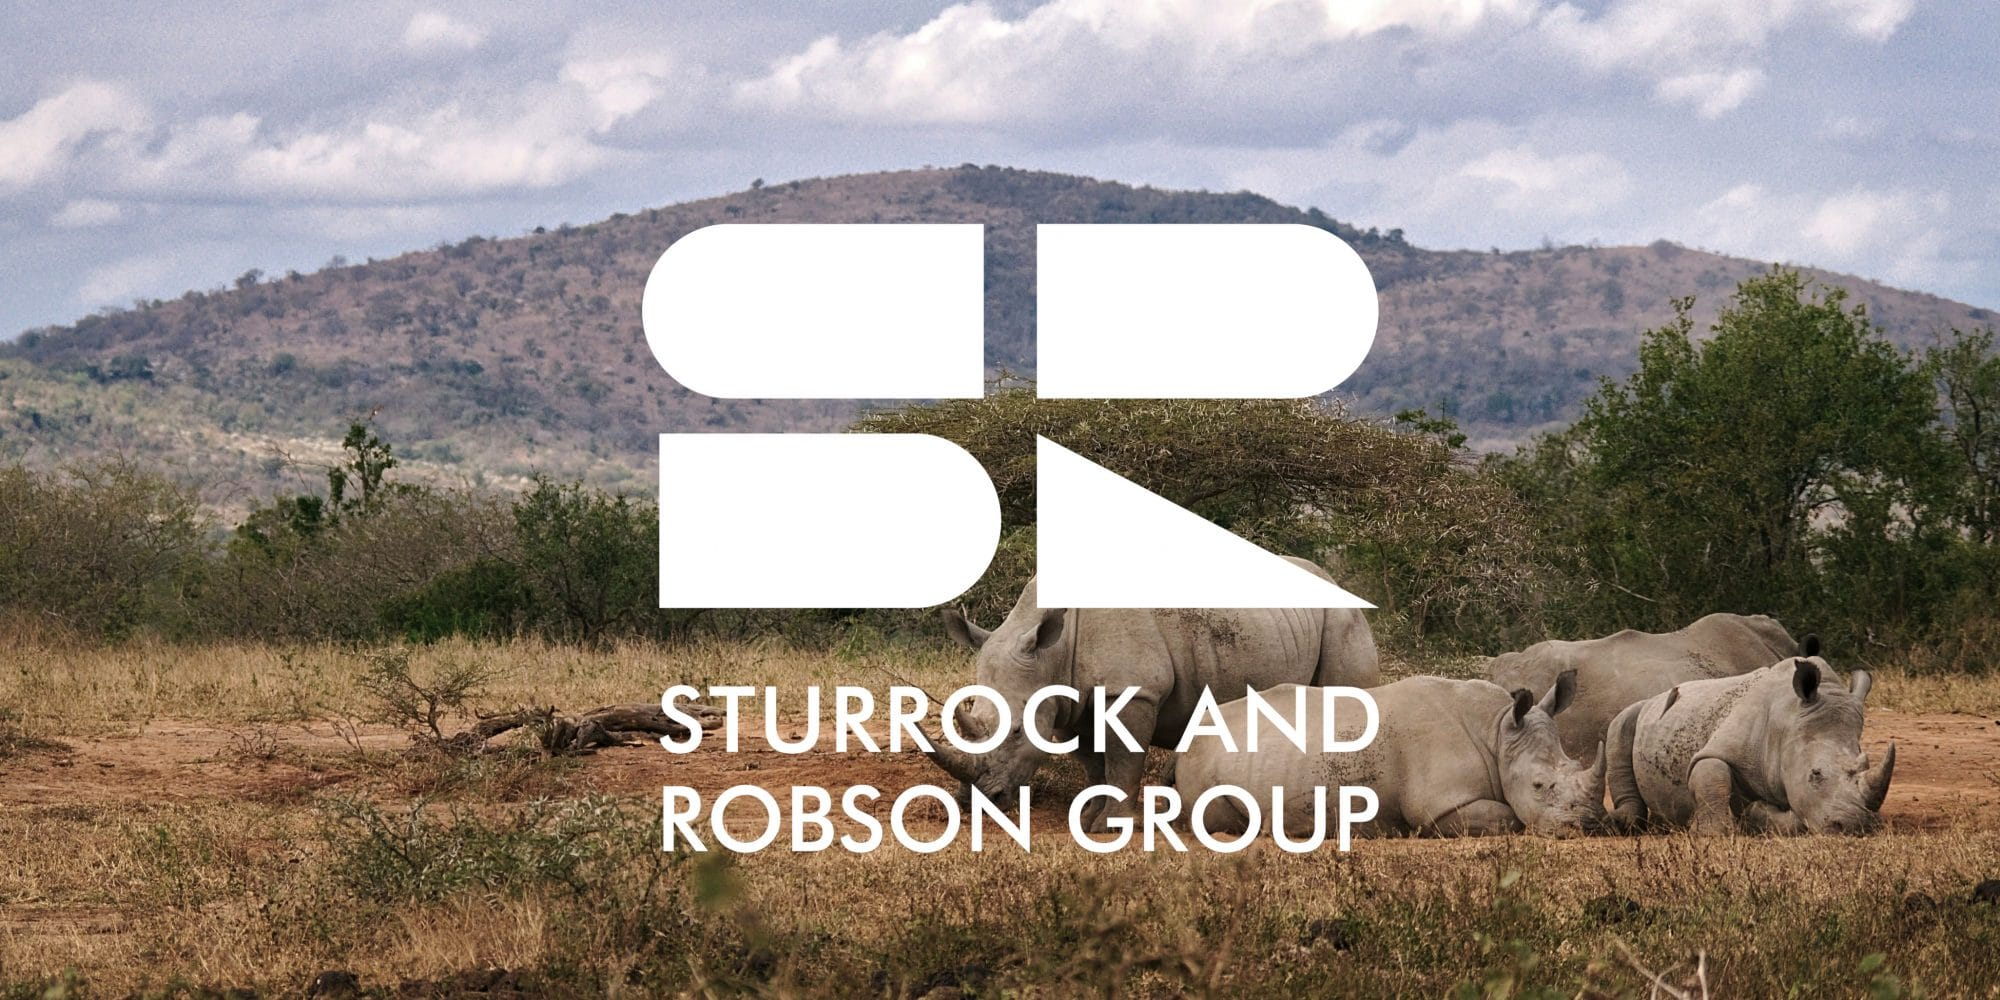 Sturrock and Robson Group logo